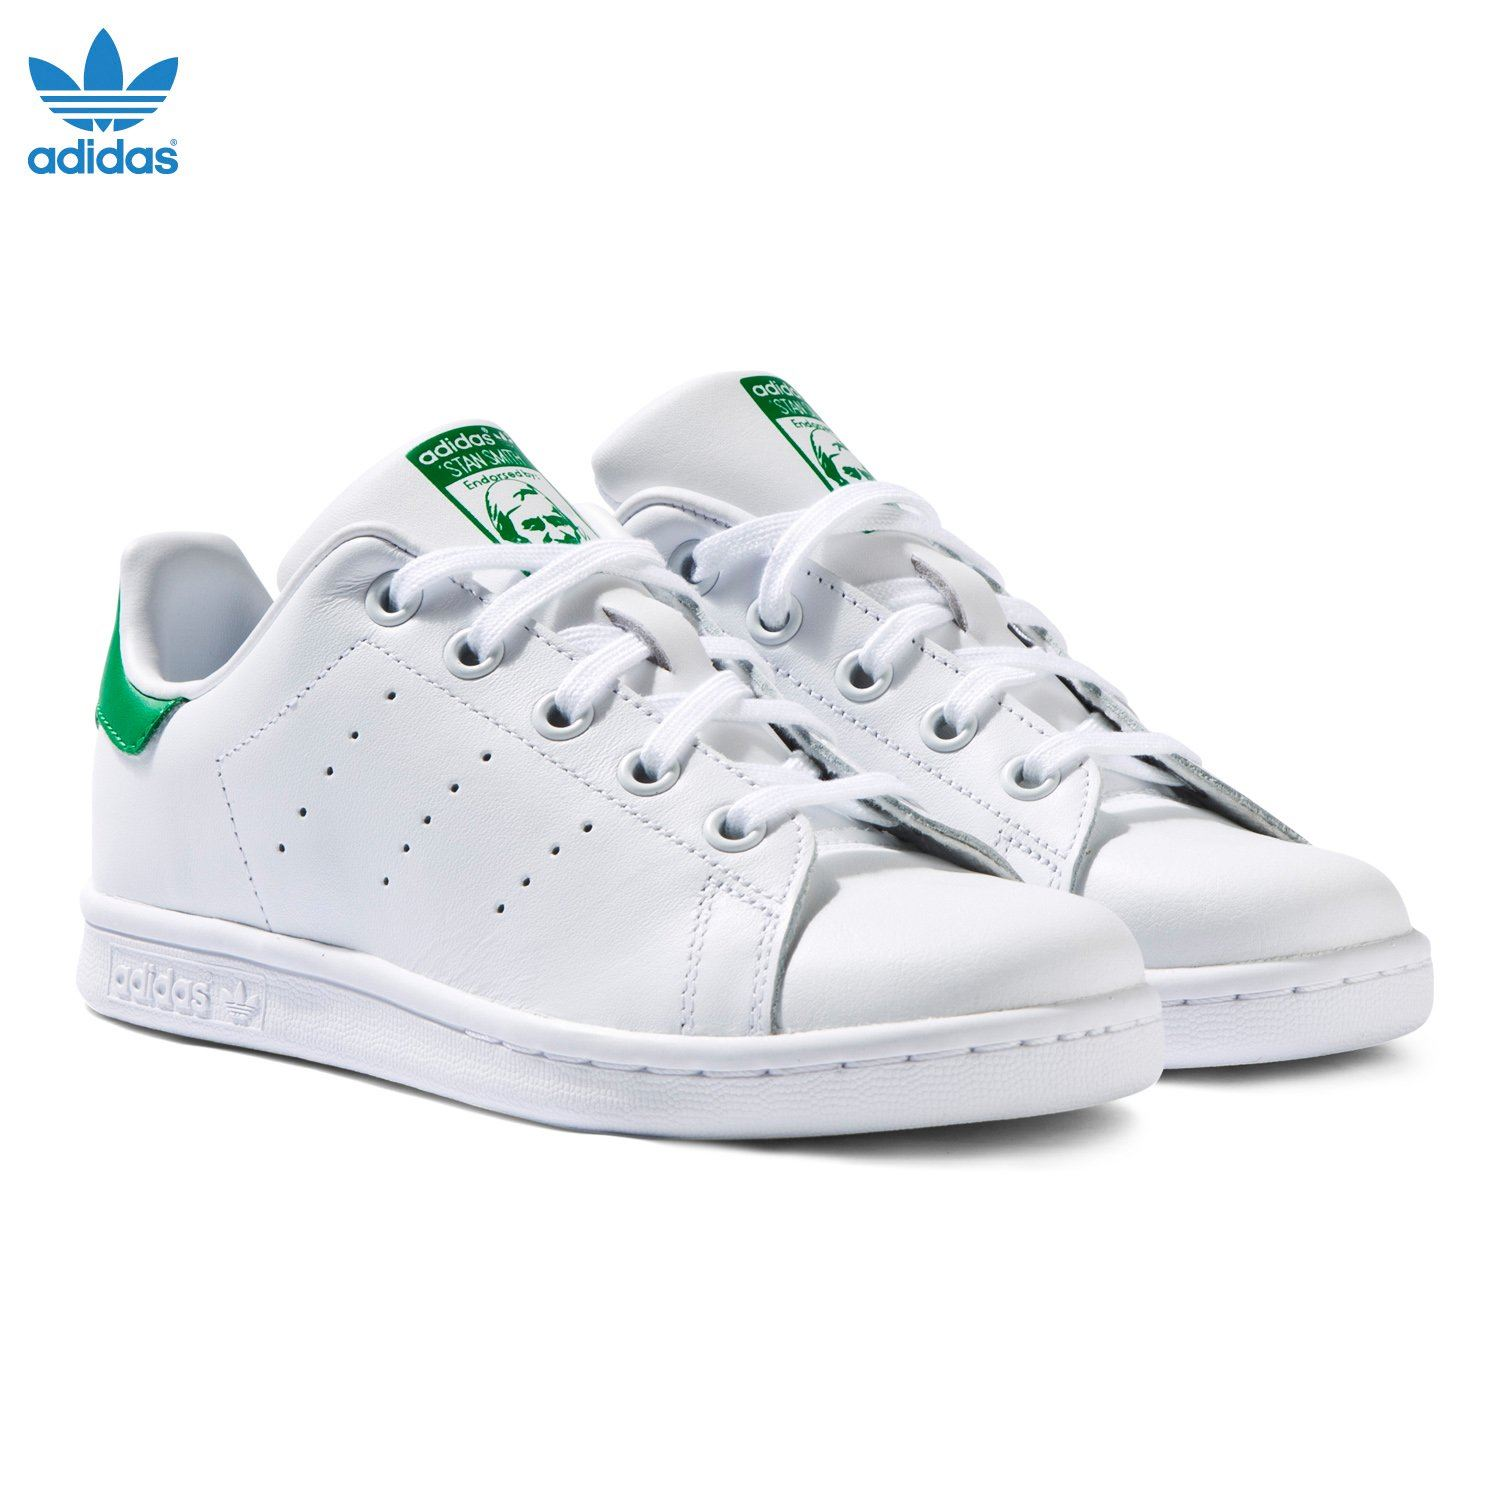 Adidas-Mens-Stan-Smith-Leather-Trainers-White-Navy-Green-Orange-and-Black thumbnail 7